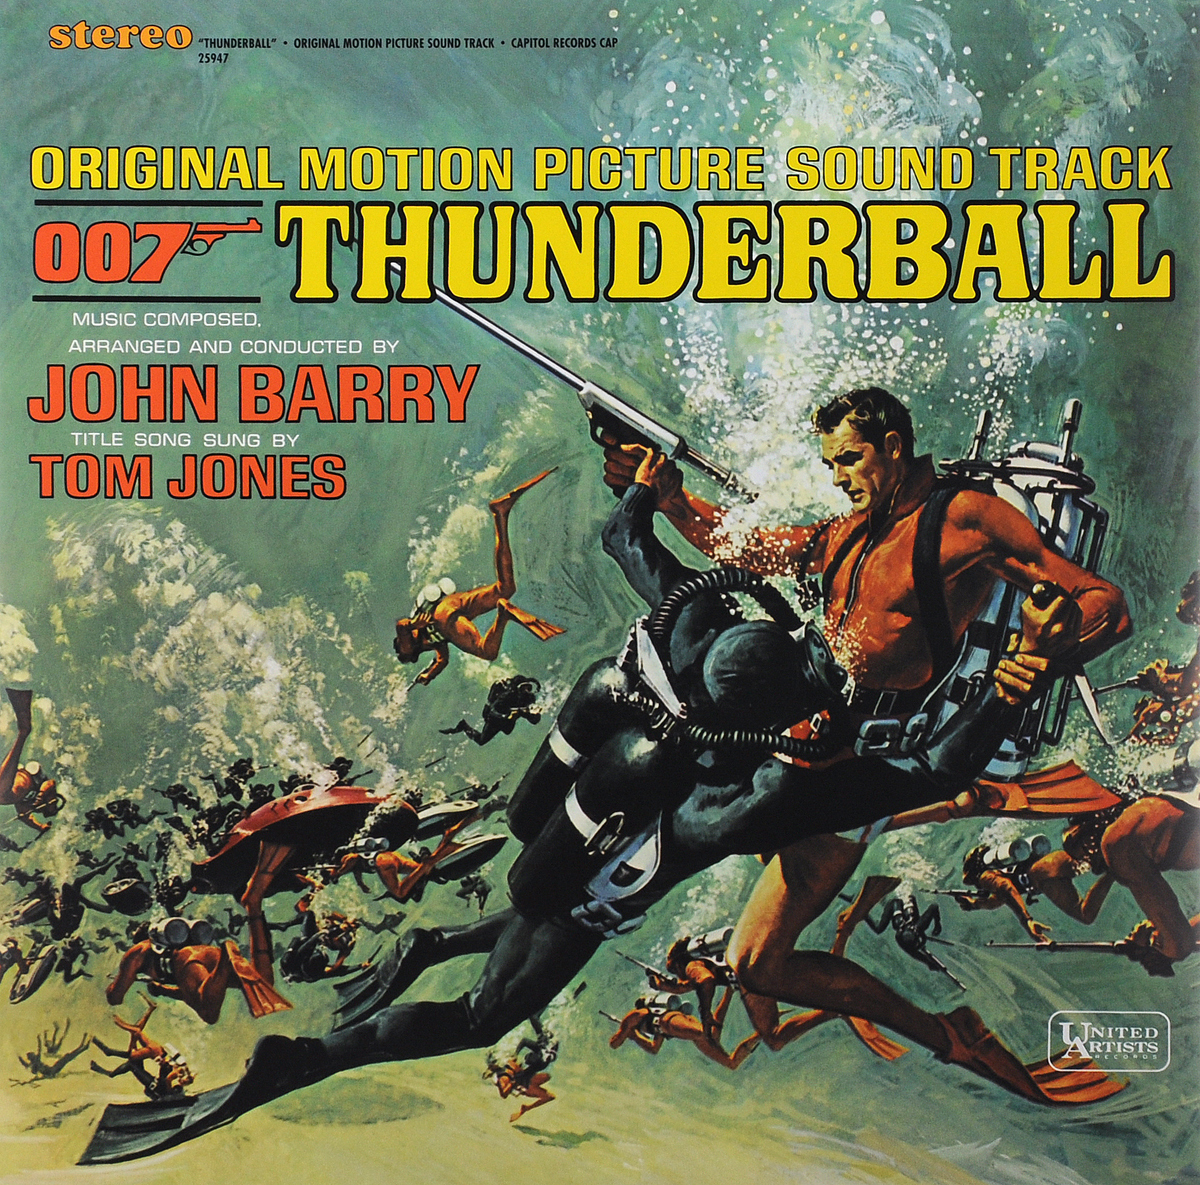 Thunderball. Original Motion Picture Sound Track (LP) 8 mile music from and inspired by the motion picture 2 lp